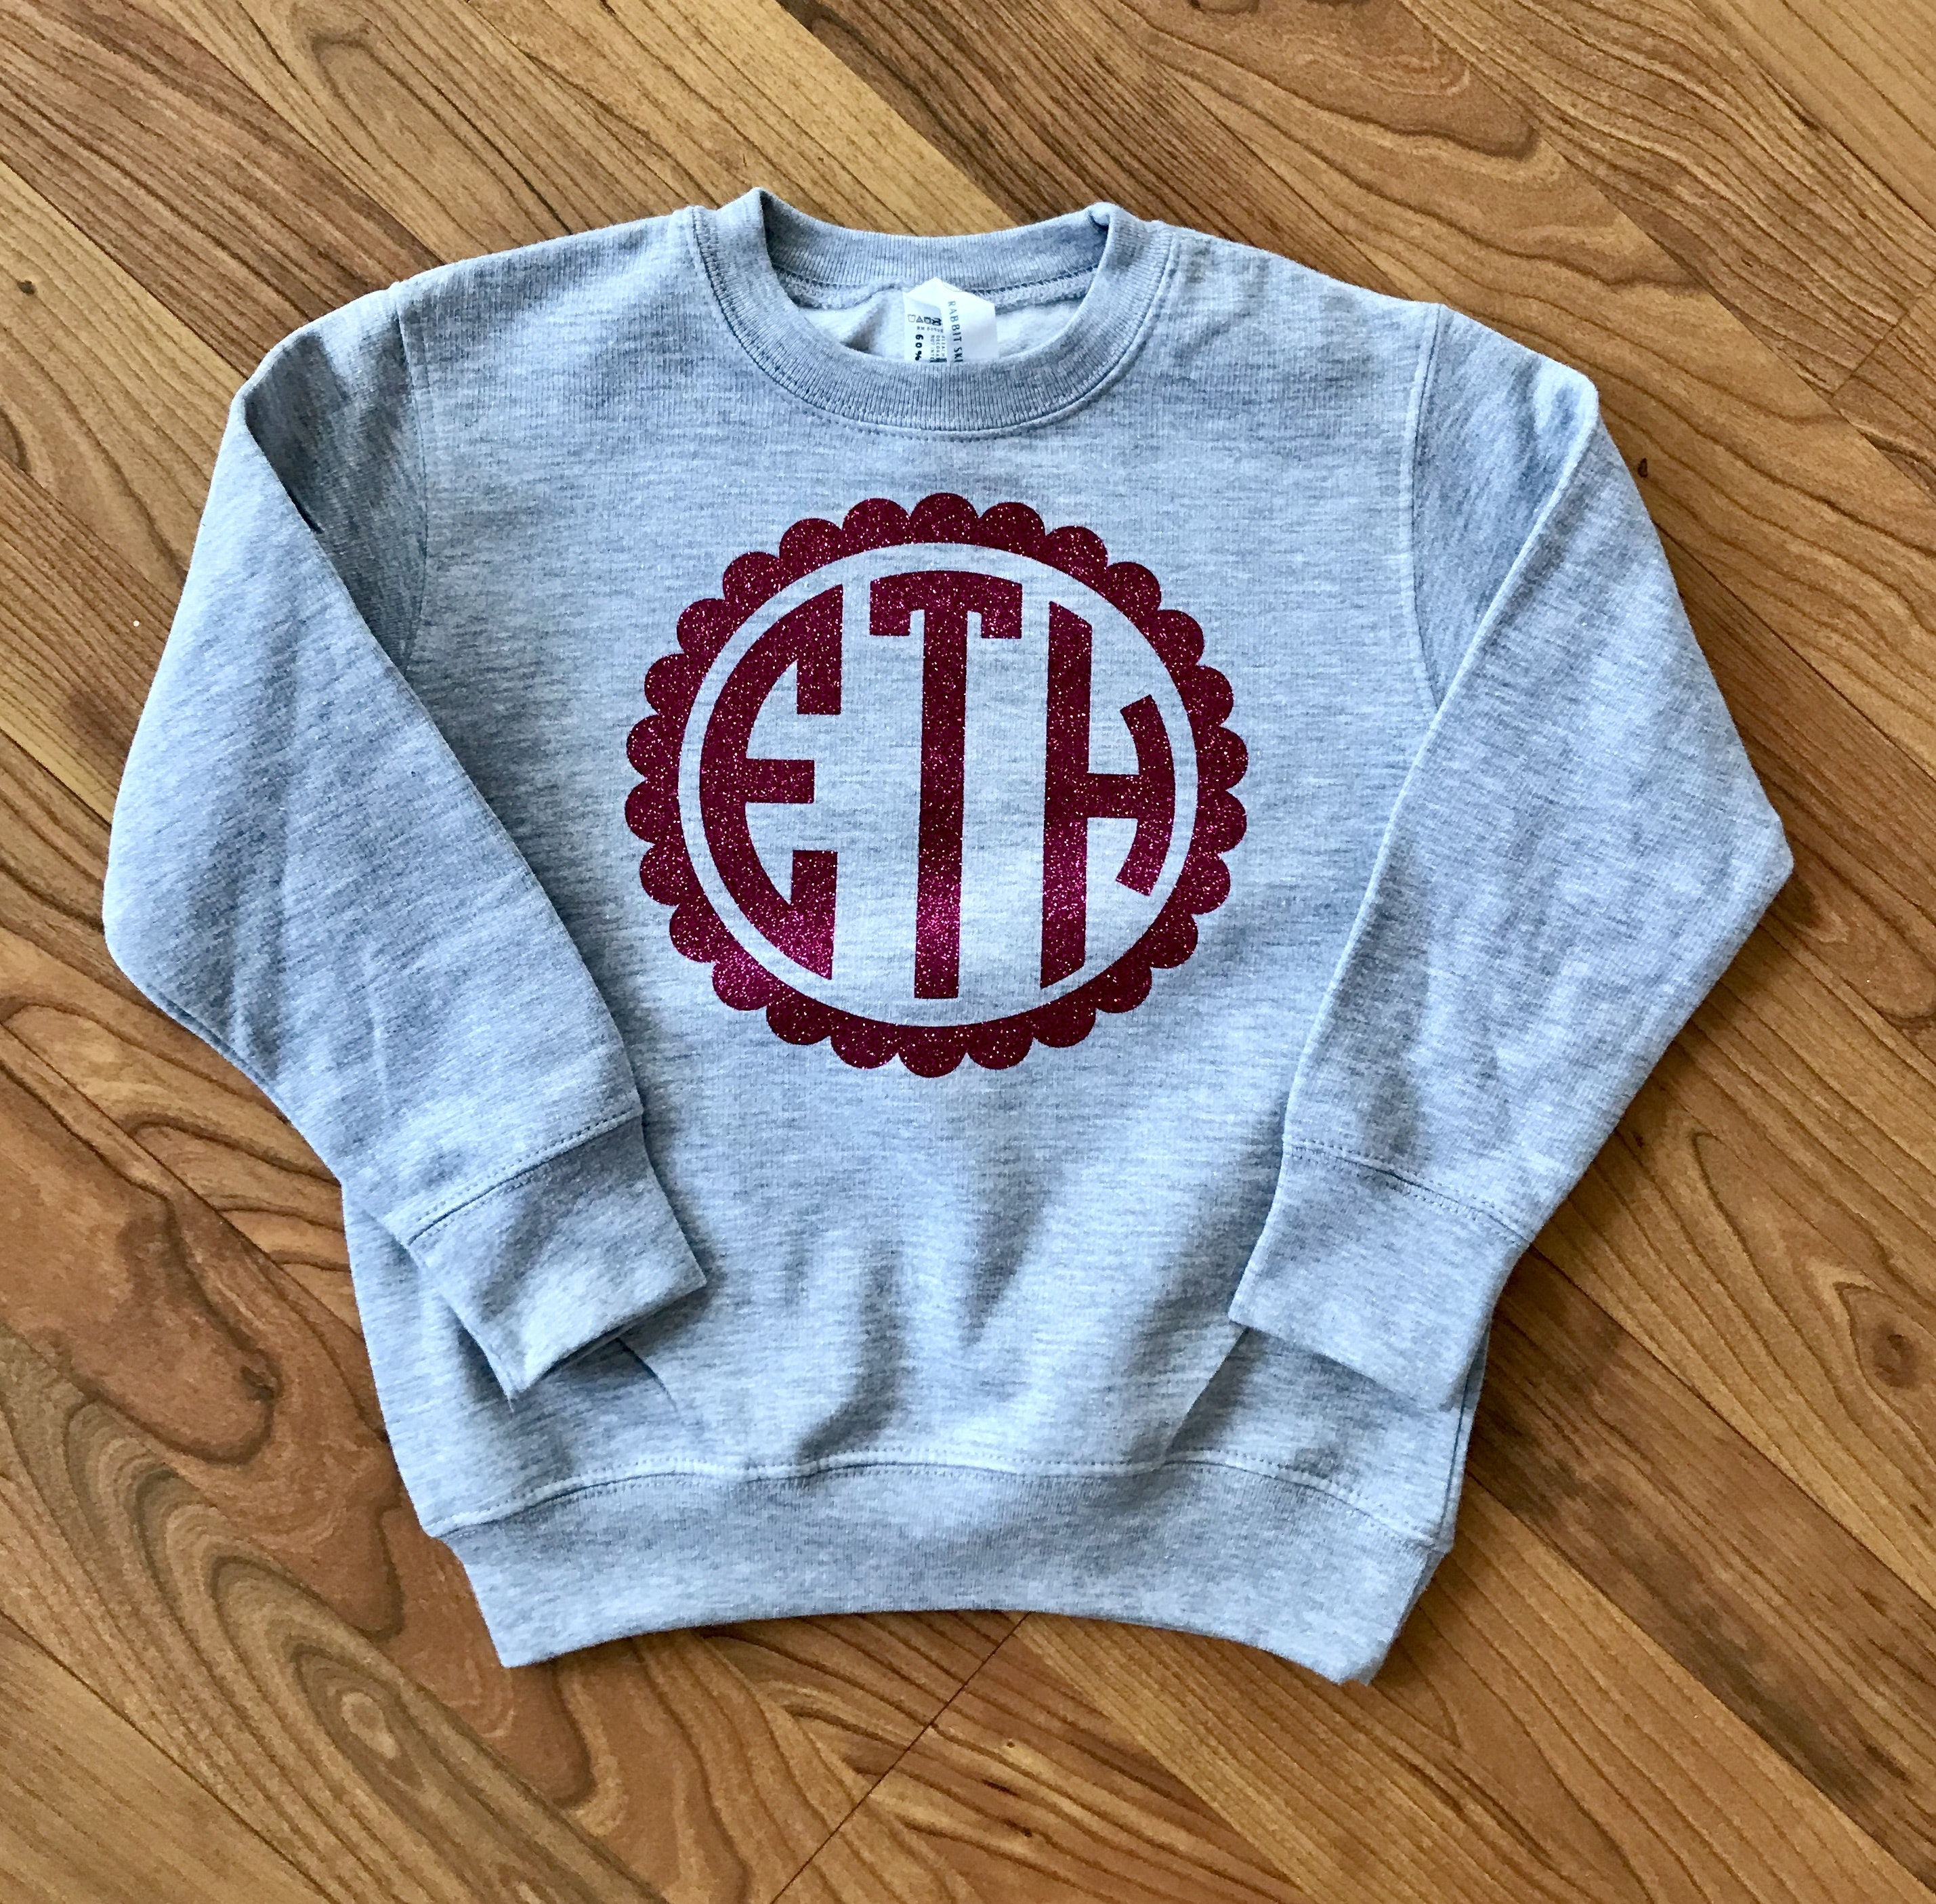 Rabbit Skins 3317 customer review by COURTNEY TUCKER The best toddler sweatshirt